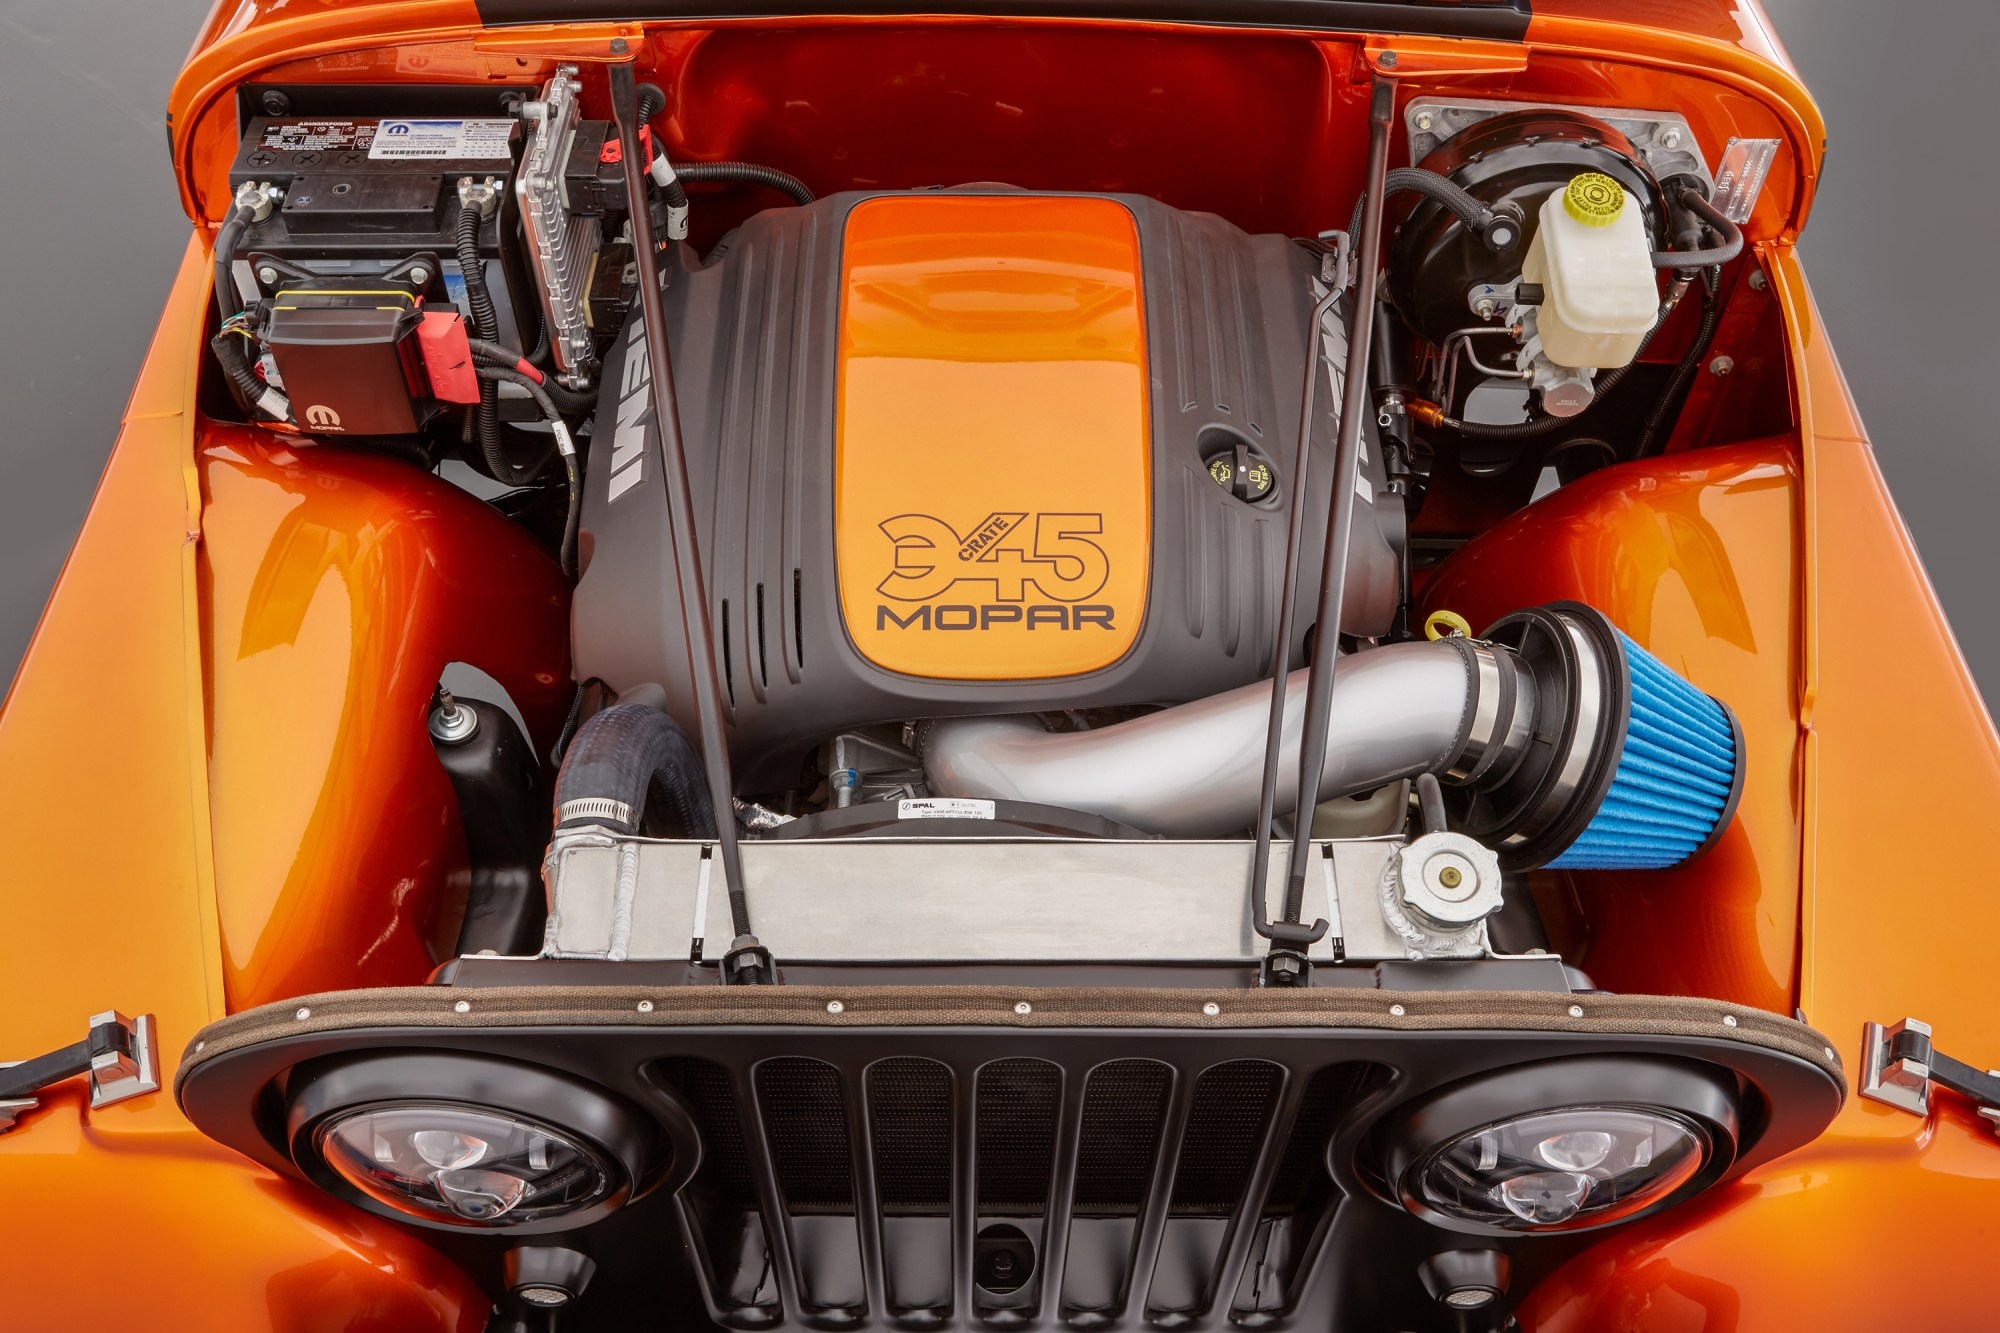 hight resolution of both mopar engine kits have a msrp of 1 795 each and are available for purchase now through your local chrysler dodge jeep ram dealer either in store or